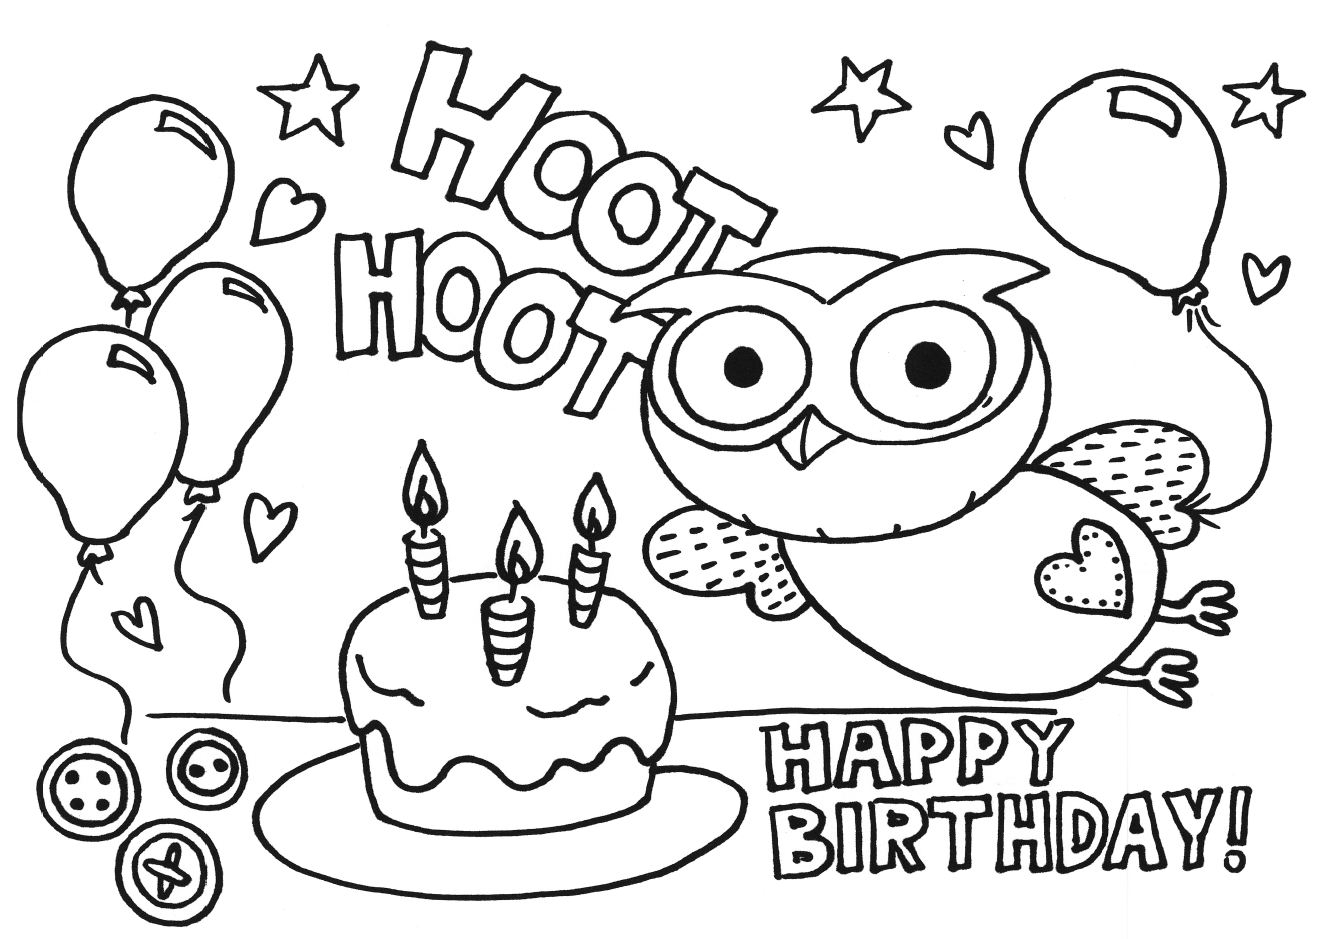 free birthday coloring pages - printable happy birthday coloring pages